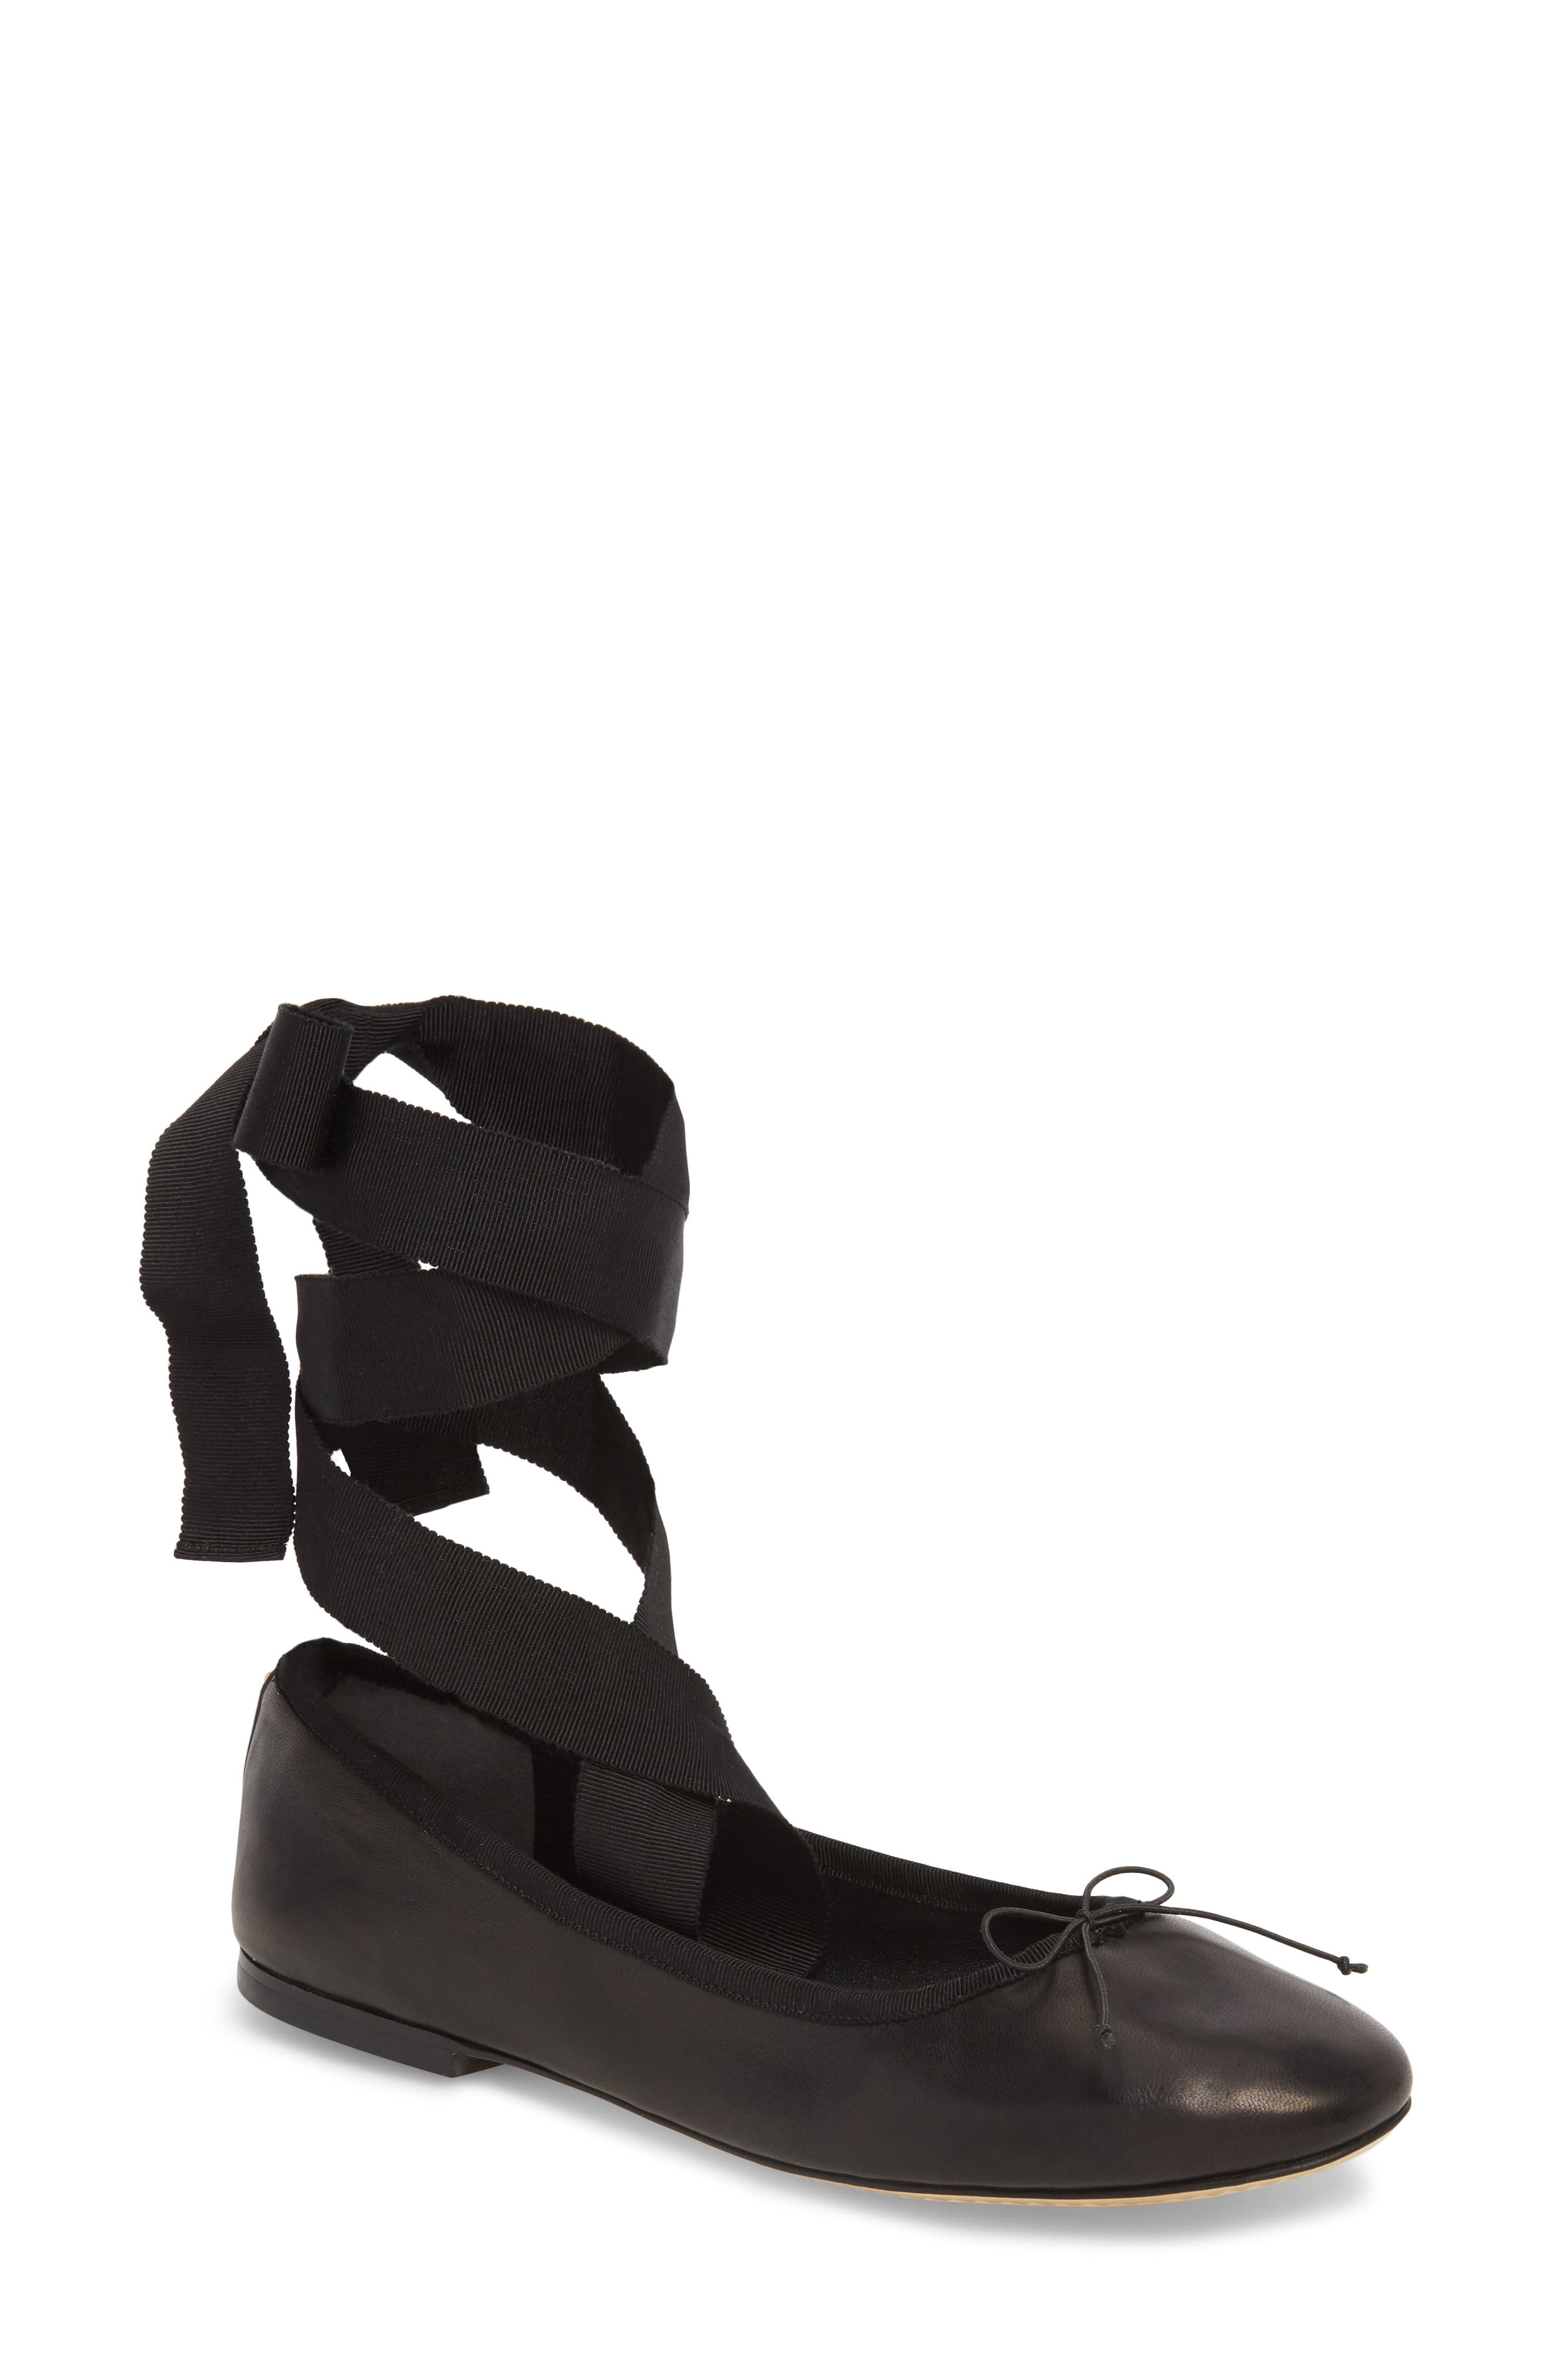 Elodie Lace-Up Ballet Flat,                         Main,                         color, PERFECT BLACK